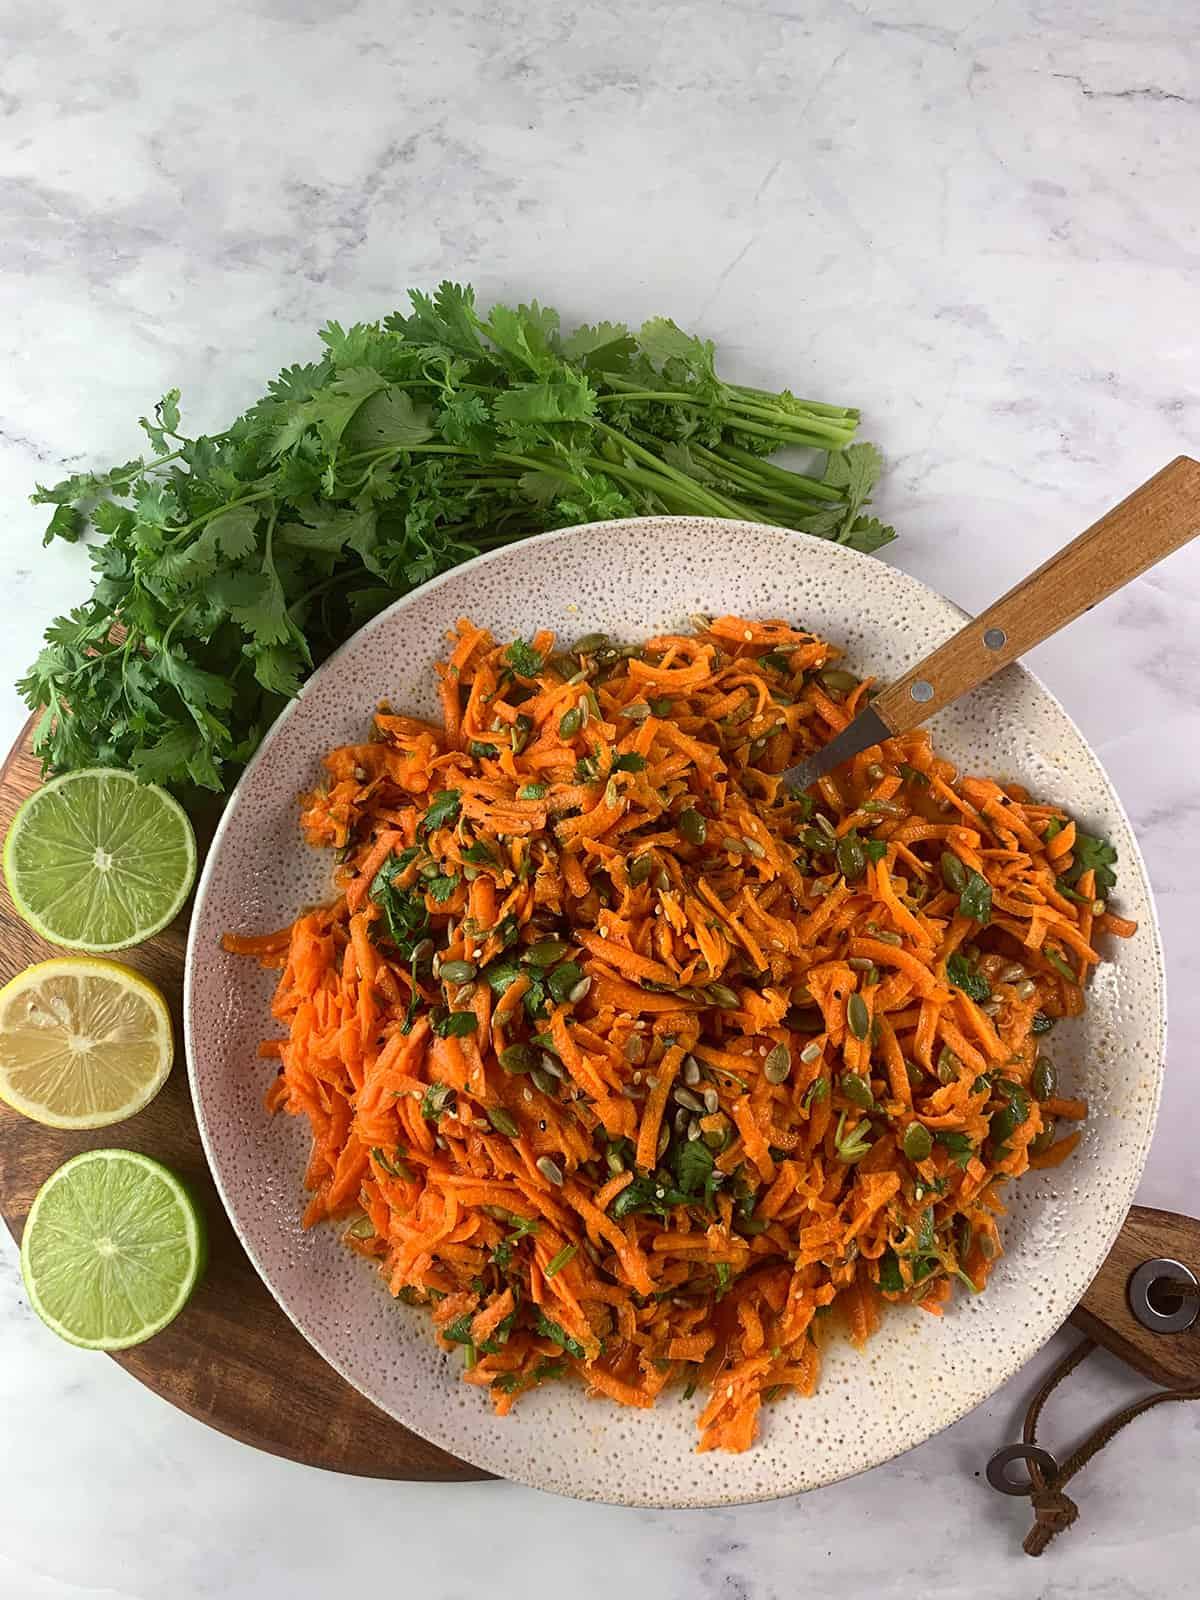 SHREDDED CARROT SALAD AERIAL VIEW